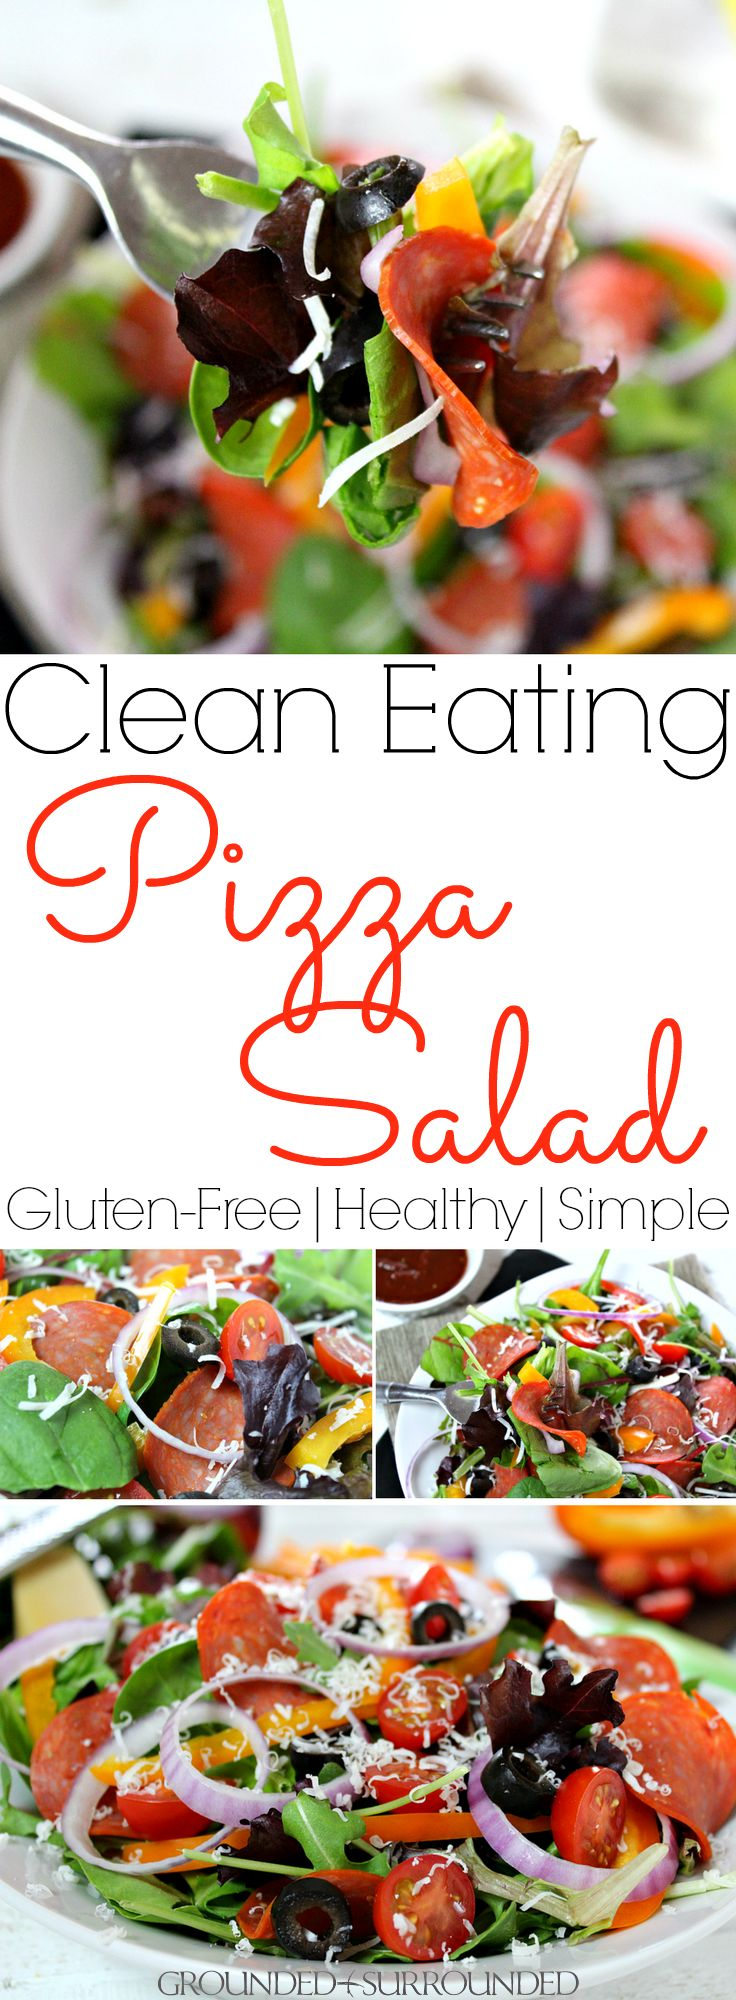 The BEST Clean Eating Pizza Salad | This is one of my favorite healthy and low carb lunch ideas! It is a delicious gluten free recipe complete with pepperoni for protein, homemade tomato-based dressing, shredded Parmesan cheese, and veggies. Meals like this are great for one or families. Just pile high the toppings on a whole bag of greens and triple the sauce! Give this easy and flavorful salad a try if you are in a food rut! Sponsored by HORMEL® Pepperoni. #PEPItUP #ad